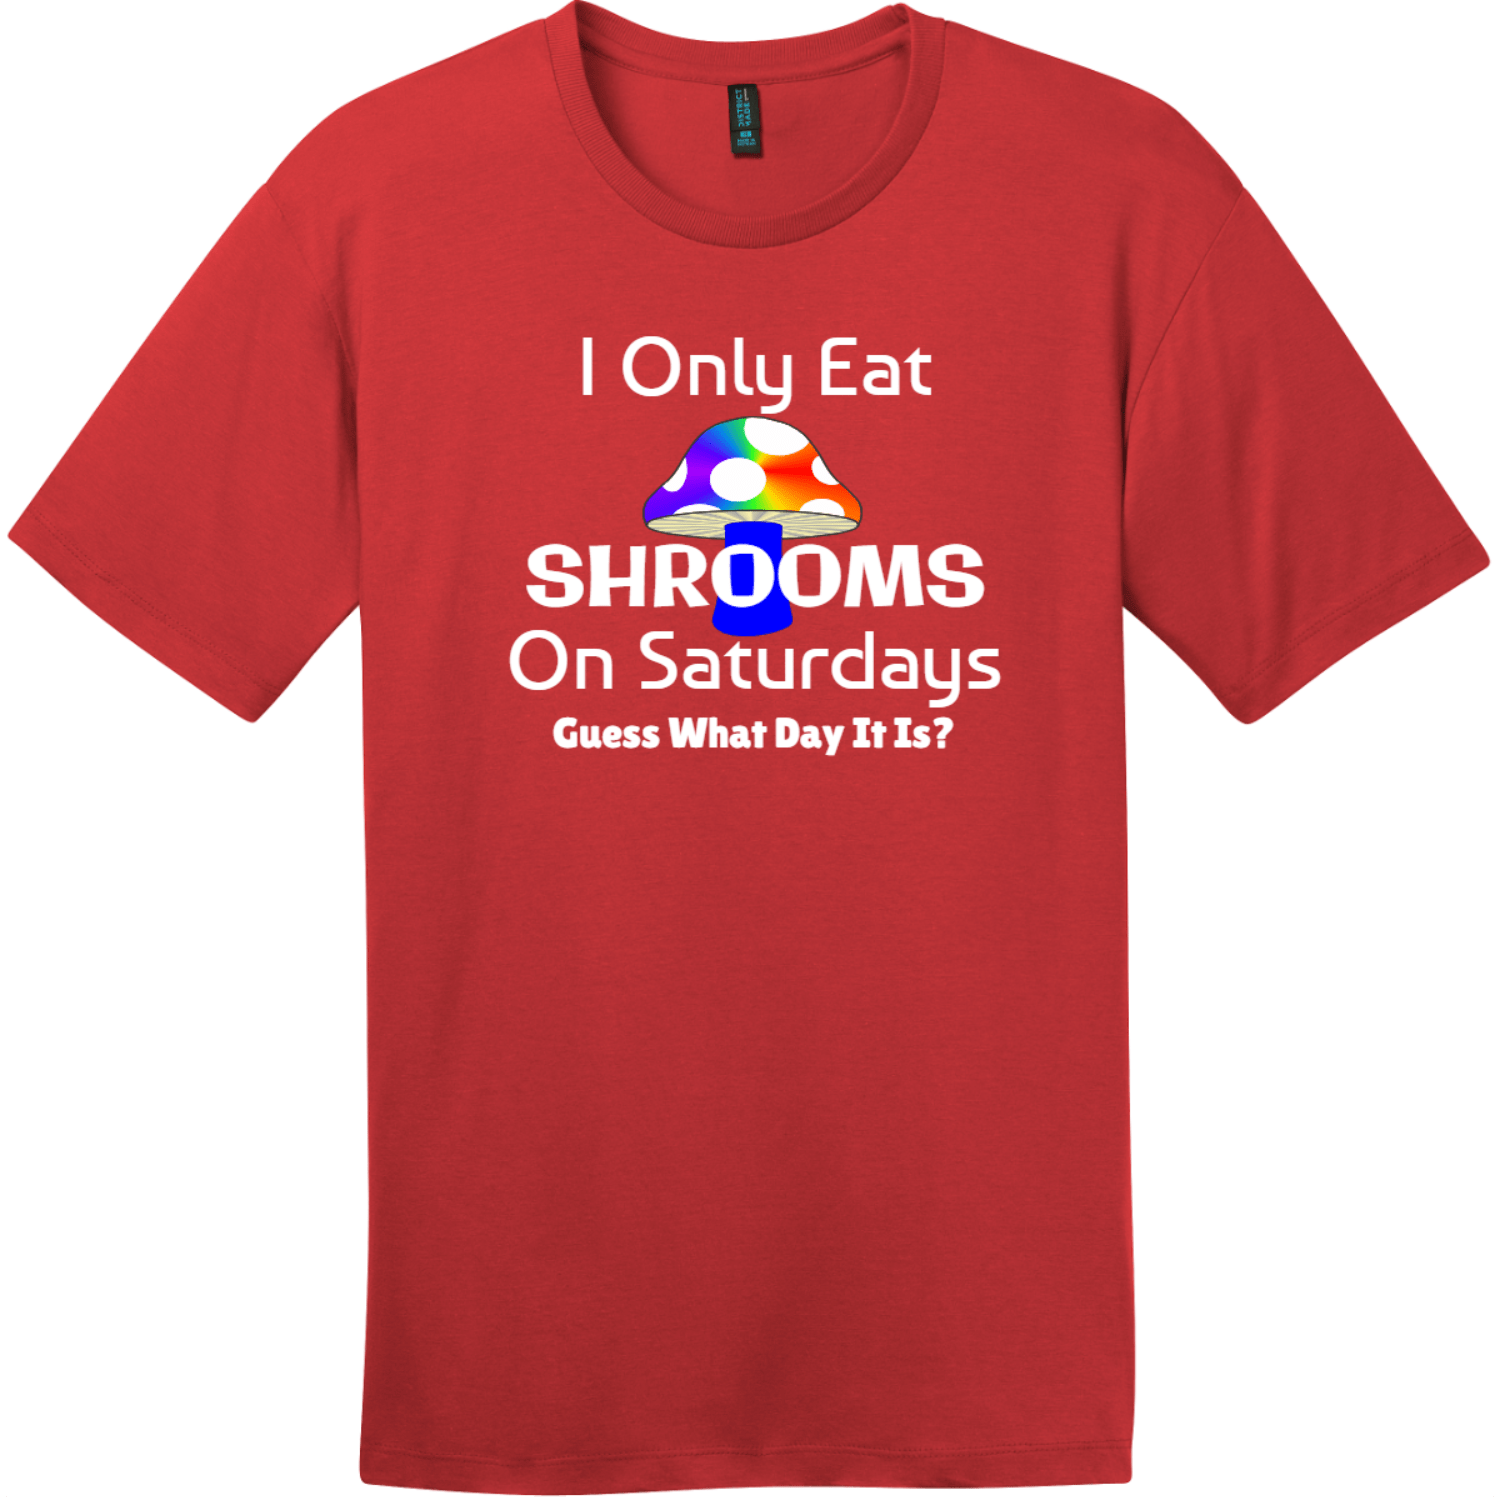 I Only Eat Shrooms On Saturdays T-Shirt Classic Red District Perfect Weight Tee DT104